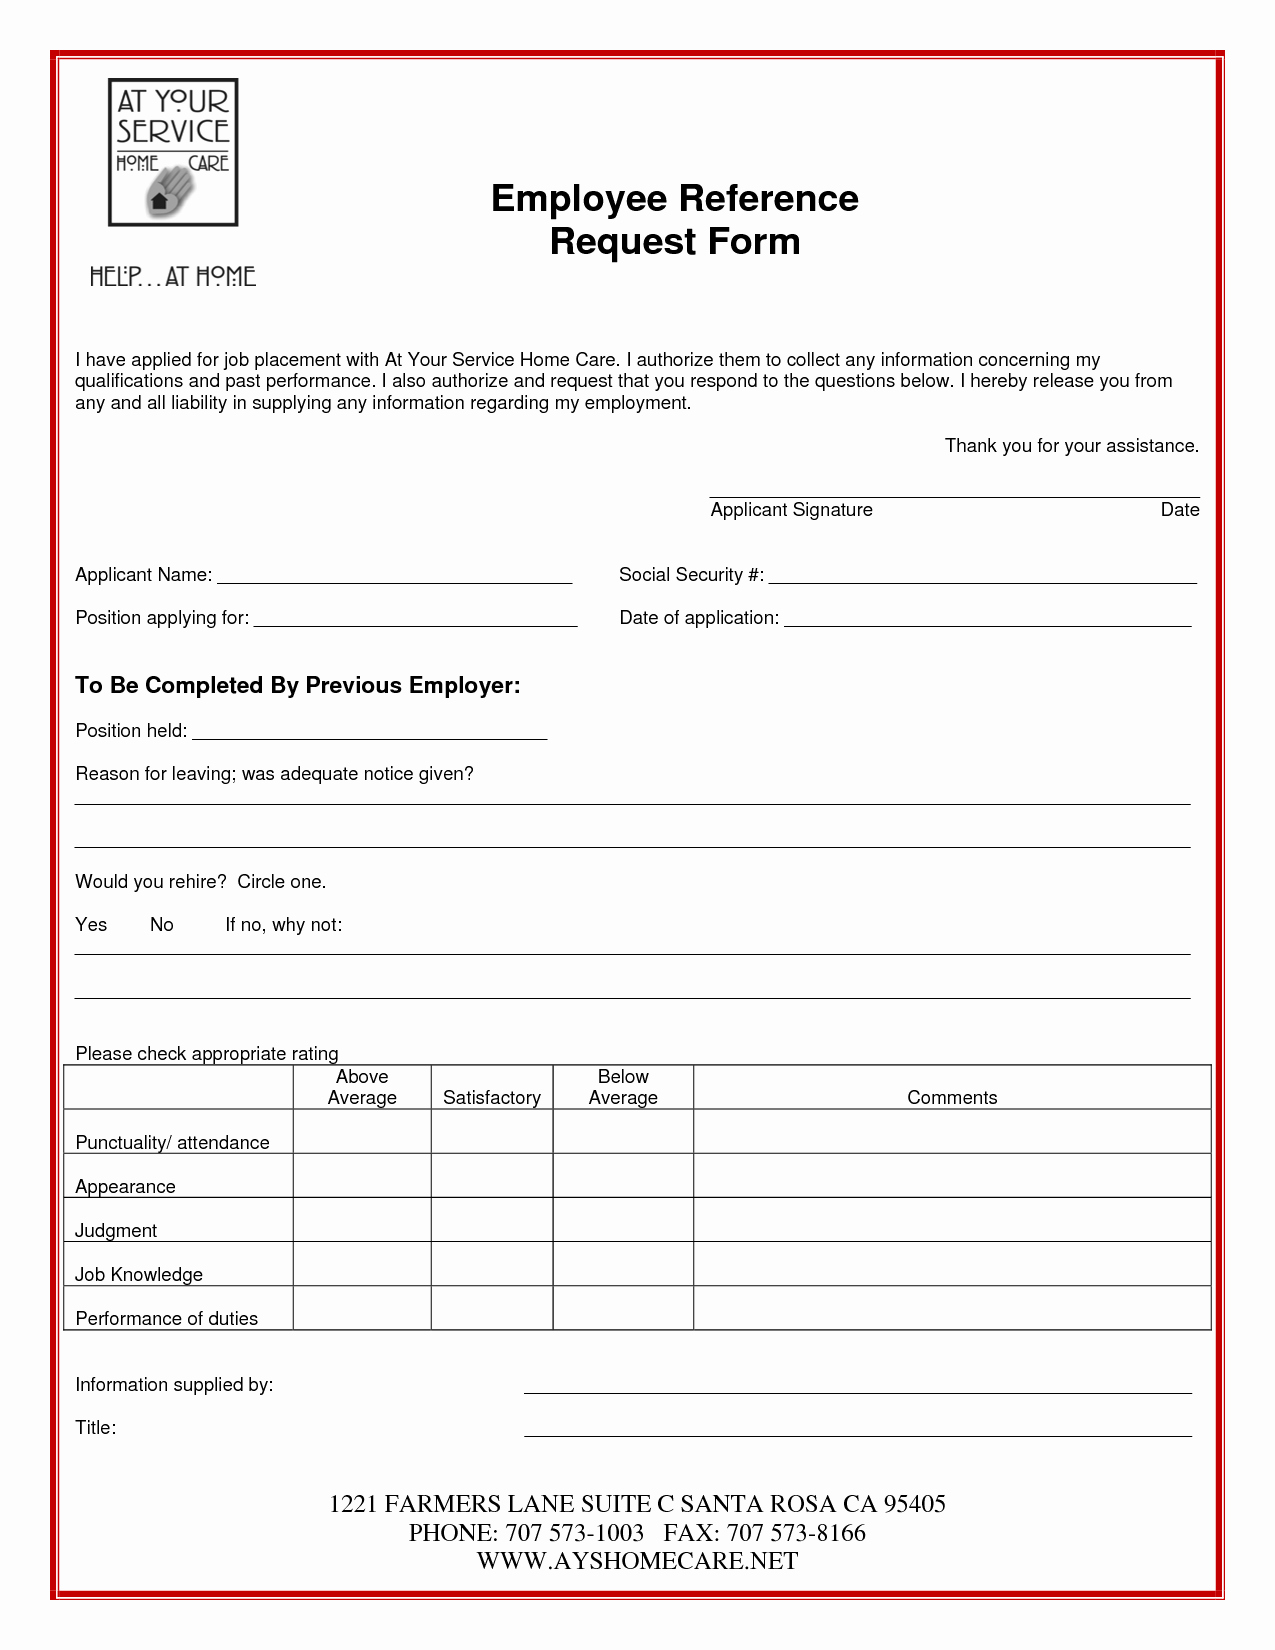 Employee Requisition form Template New Other Template Category Page 48 Urlspark